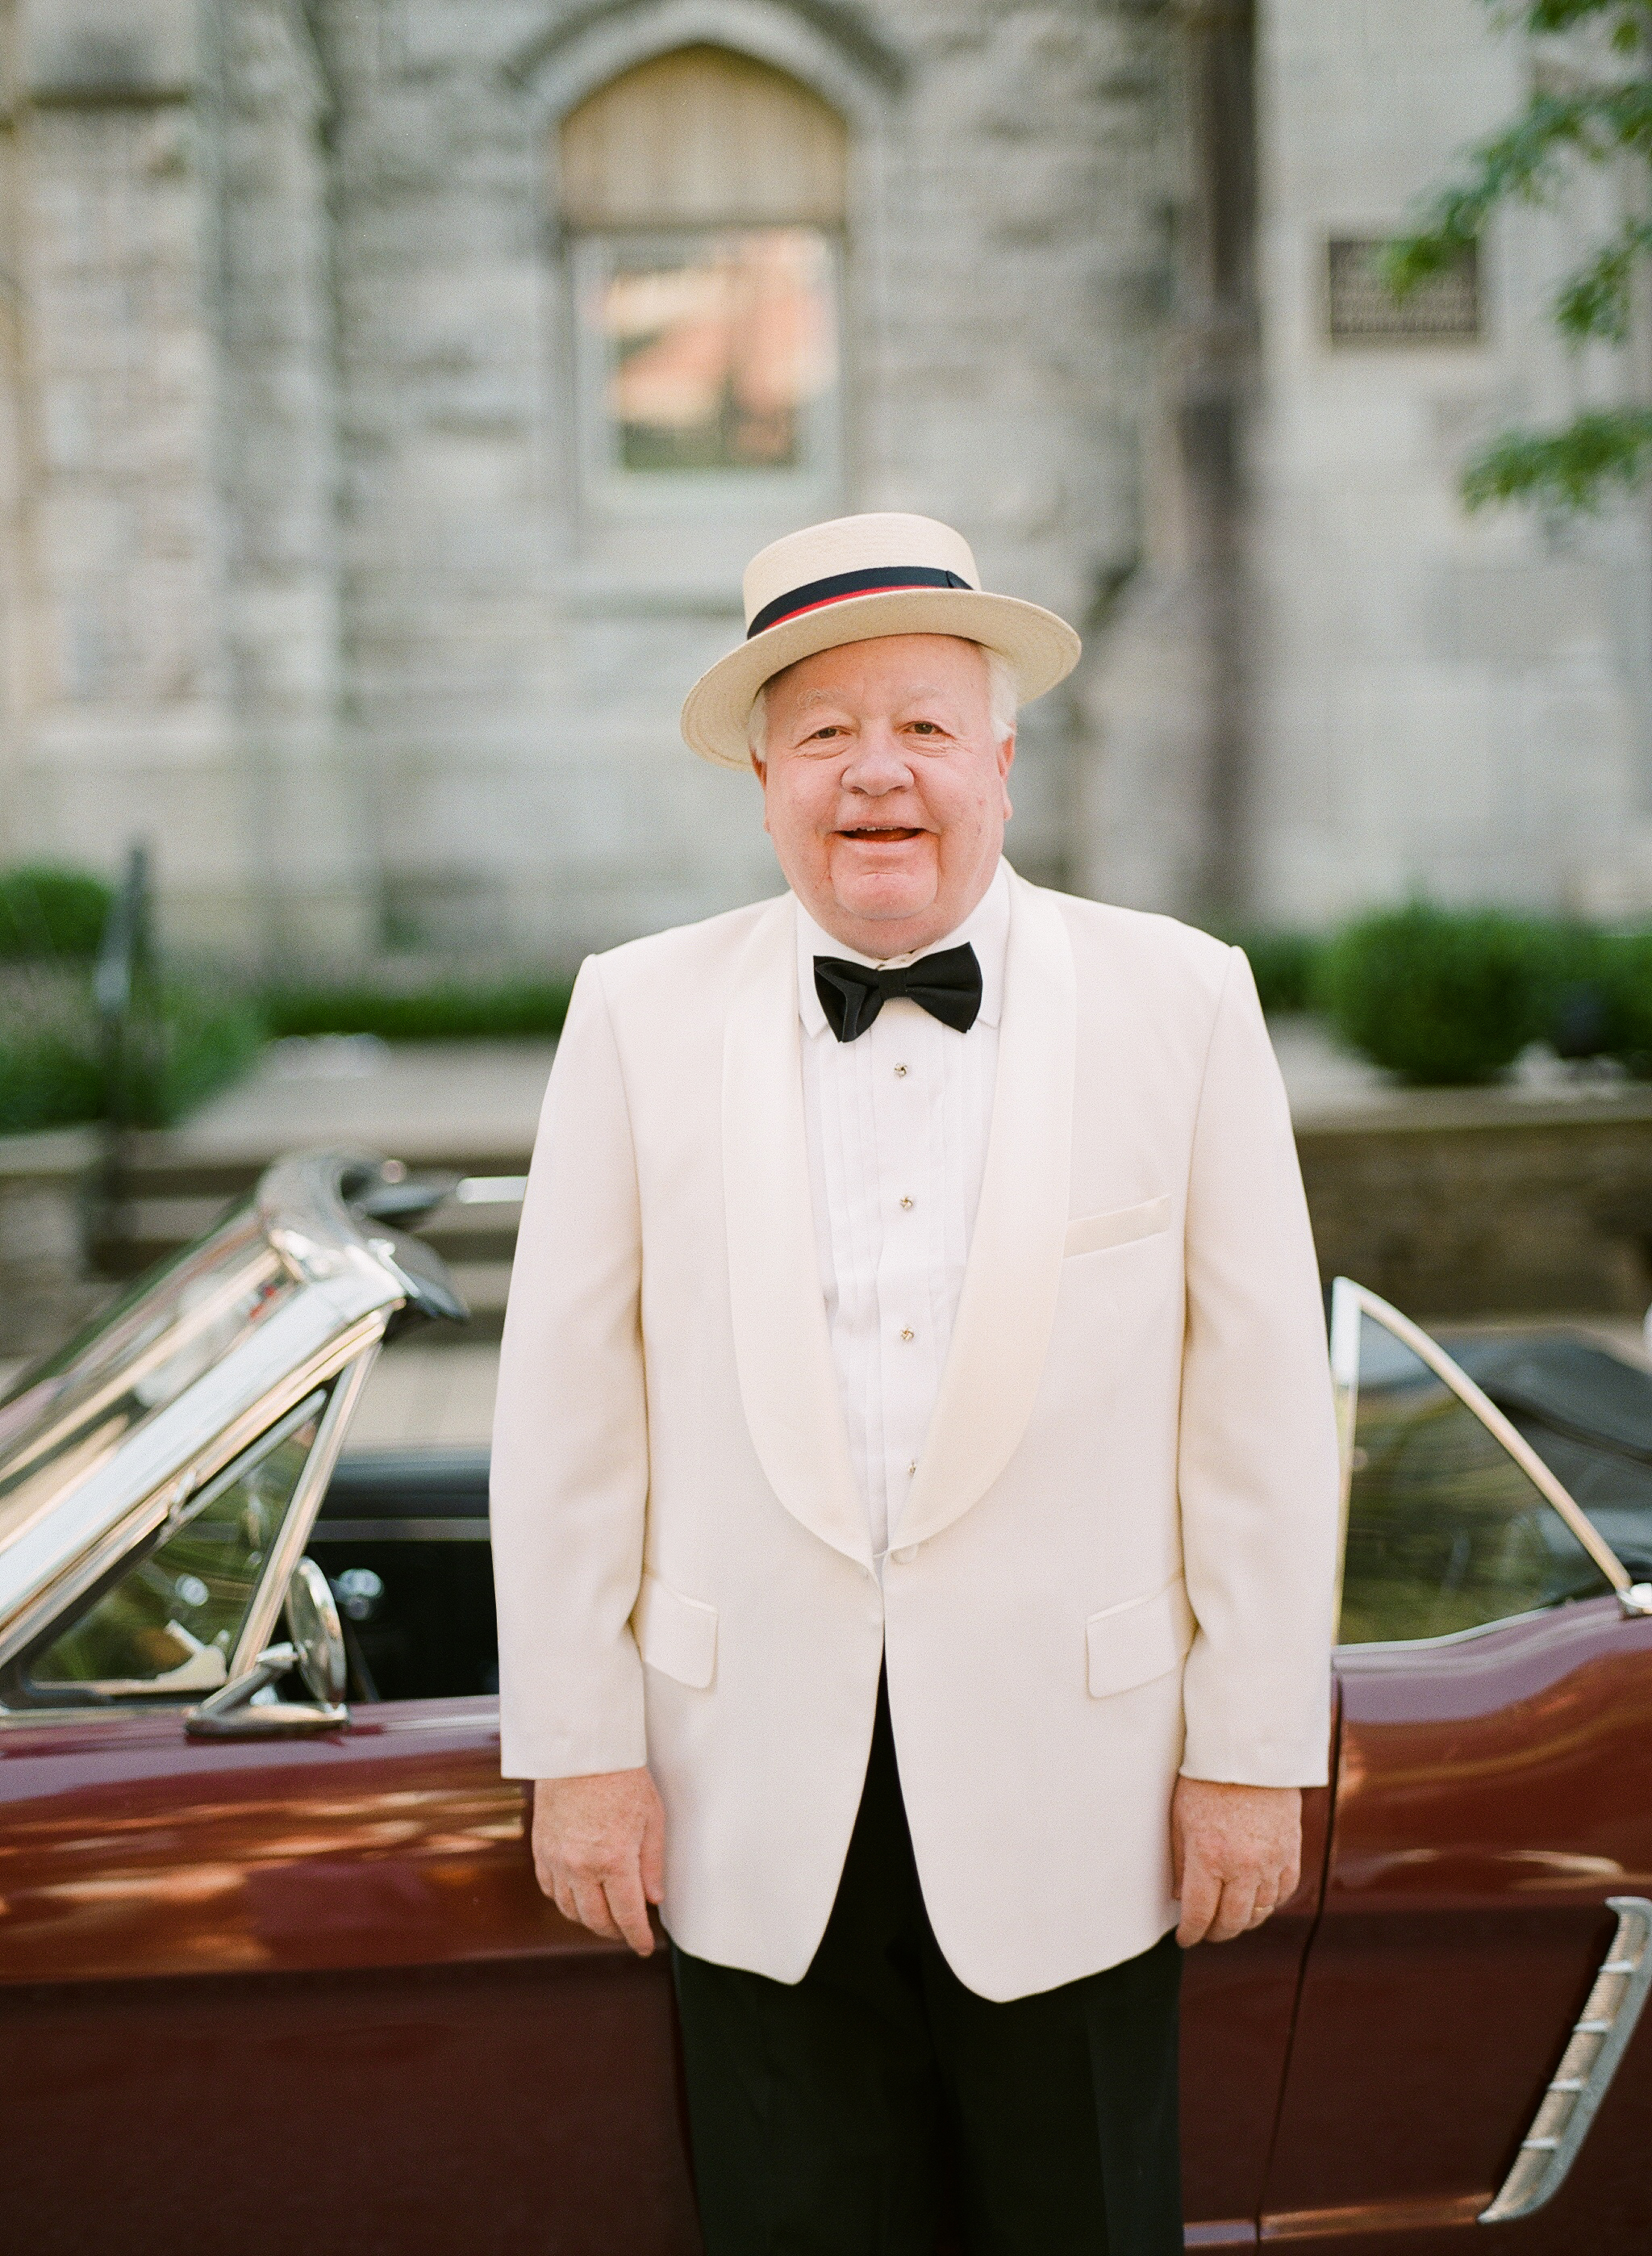 Baltimore Film Photographer Wedding.jpg